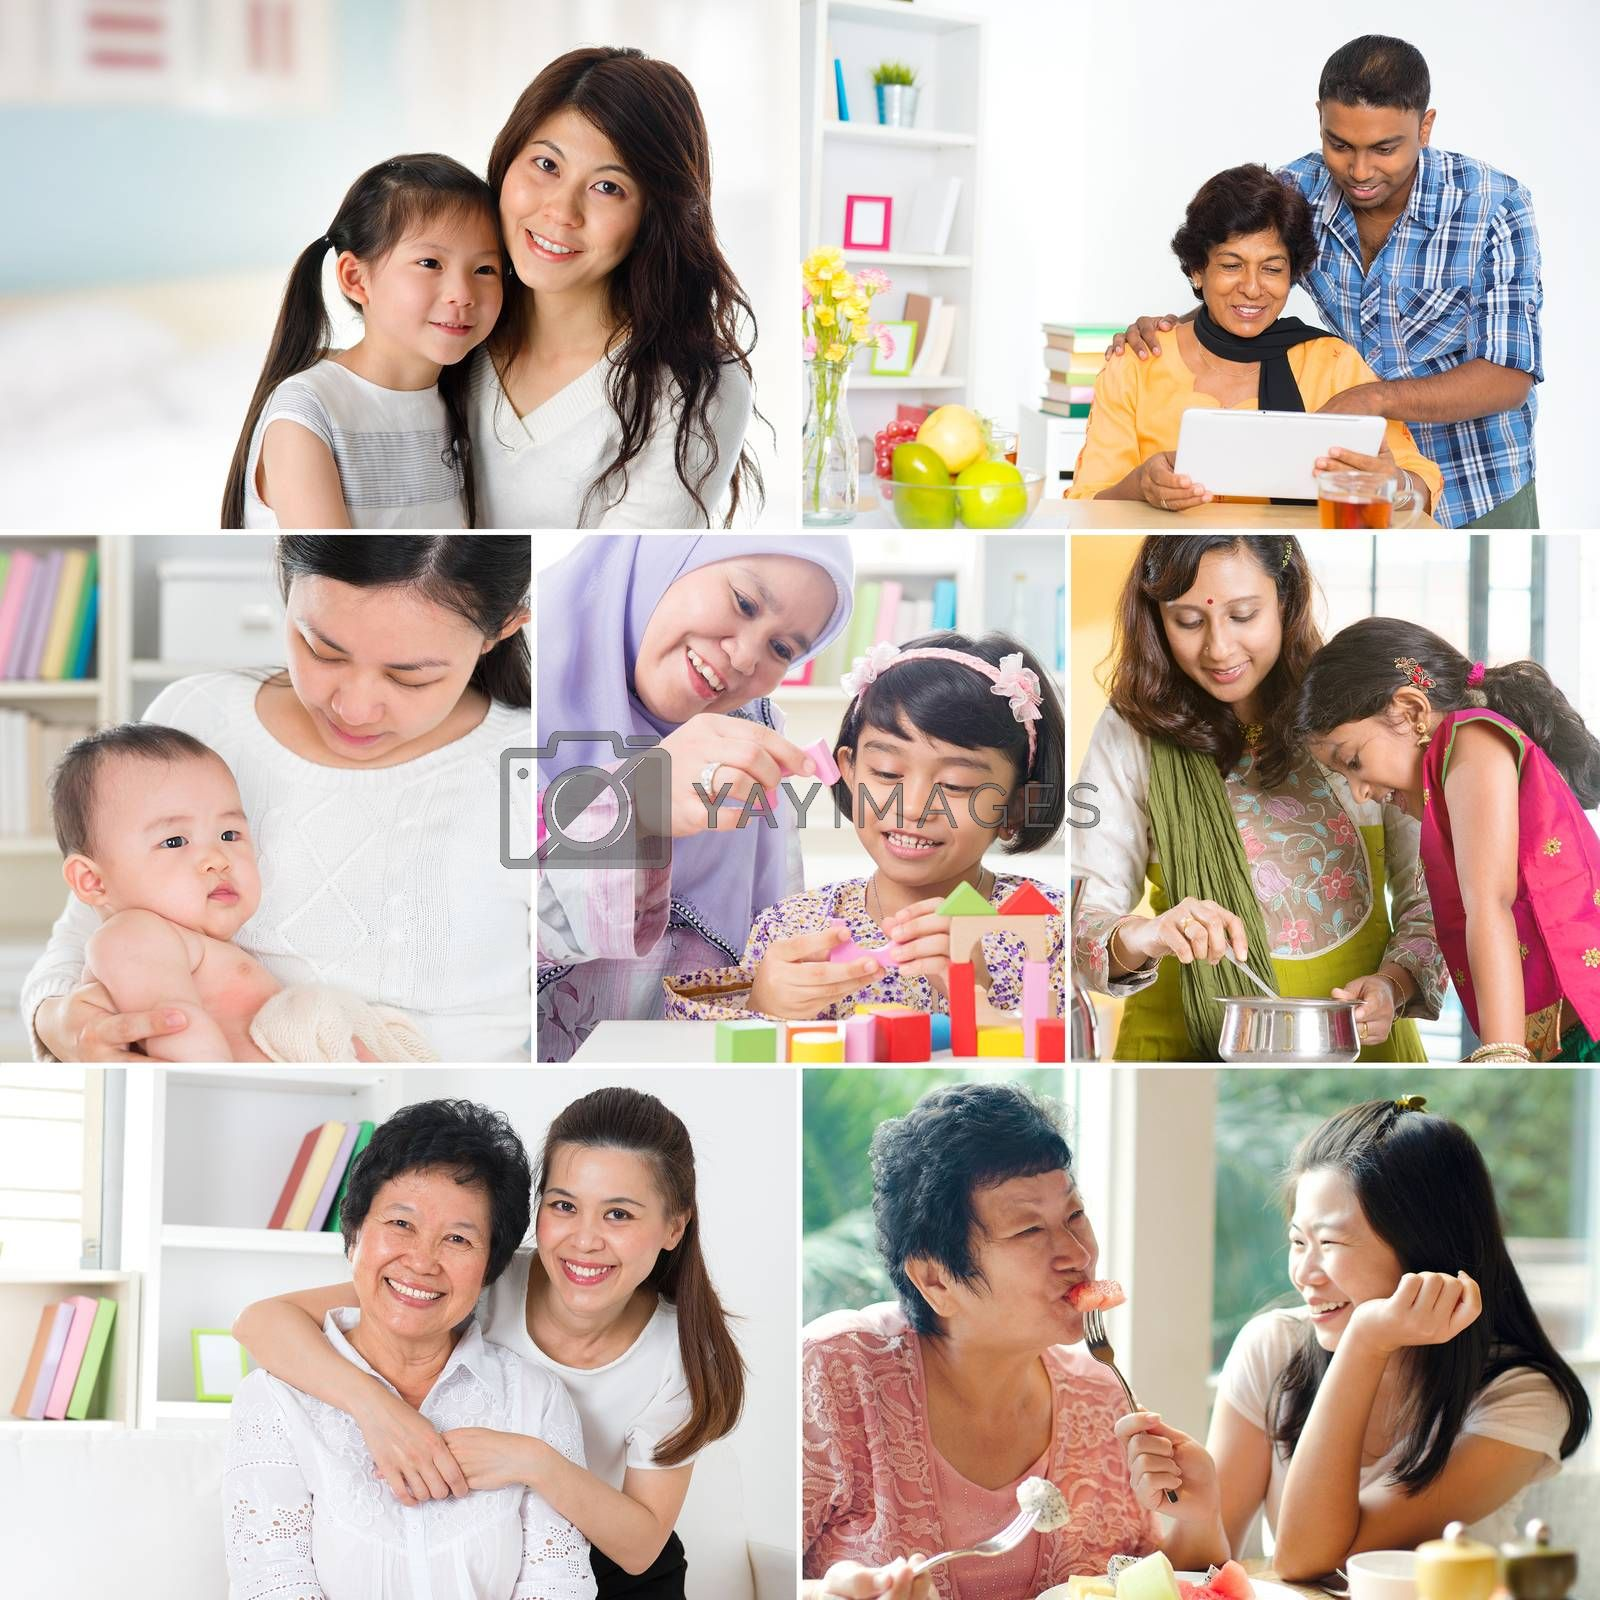 Collage photo mothers day concept. Mixed race family generations having fun indoors living lifestyle. All photos belong to me.